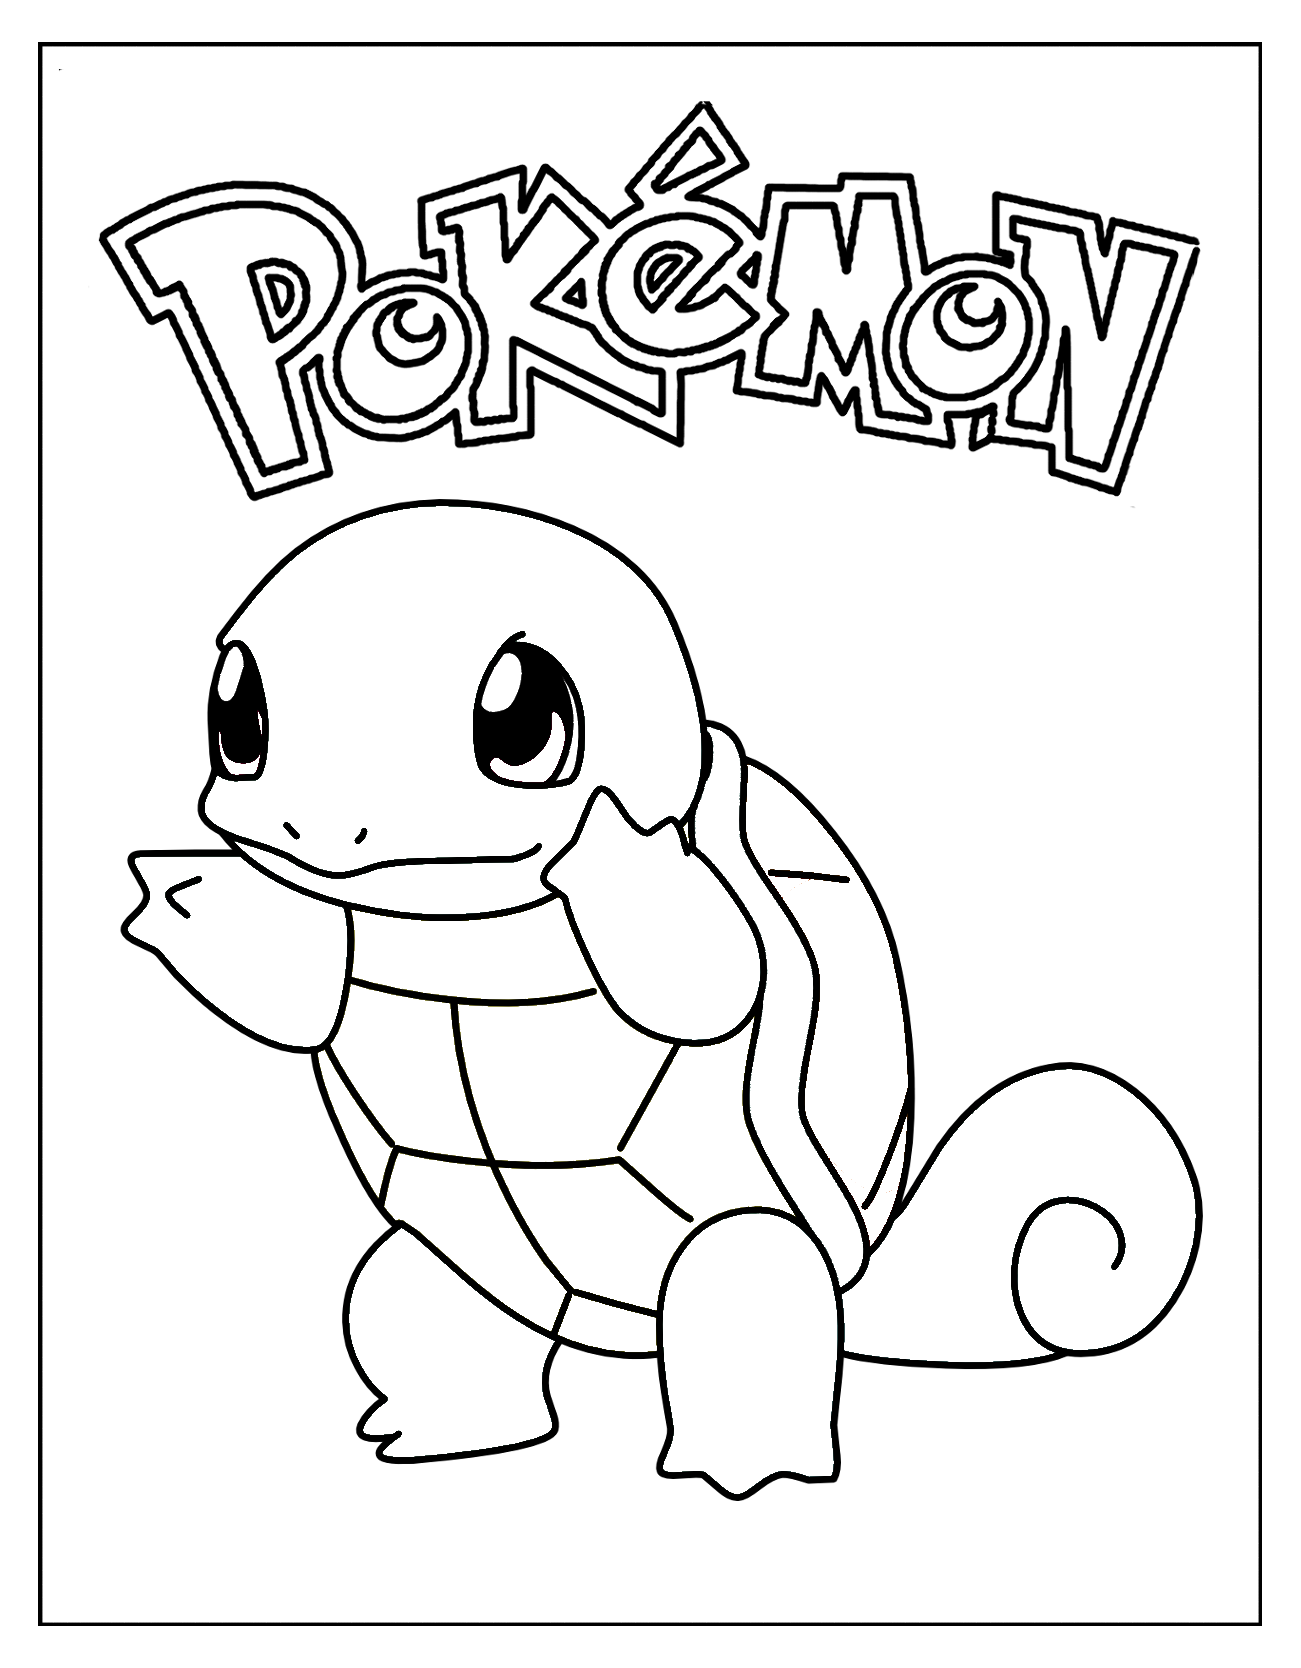 squirtle Pokemon coloring pages, Pokemon coloring sheets